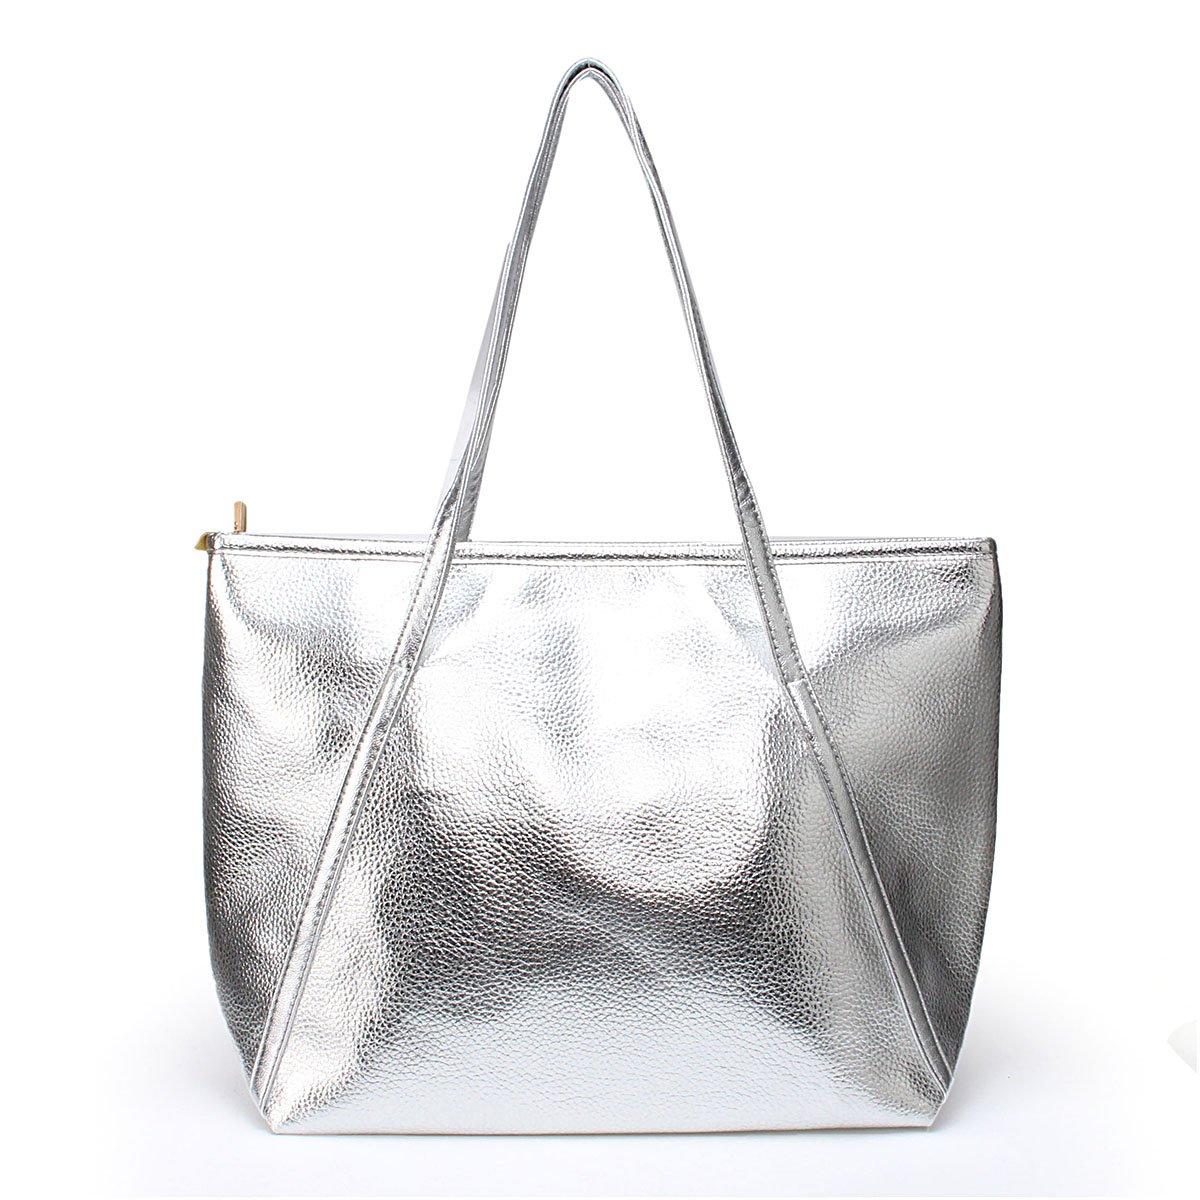 Women's Tote Handbags - OURBAG Large Fashion Designer Elegant Shoulder Bag Purses for Ladies Silver